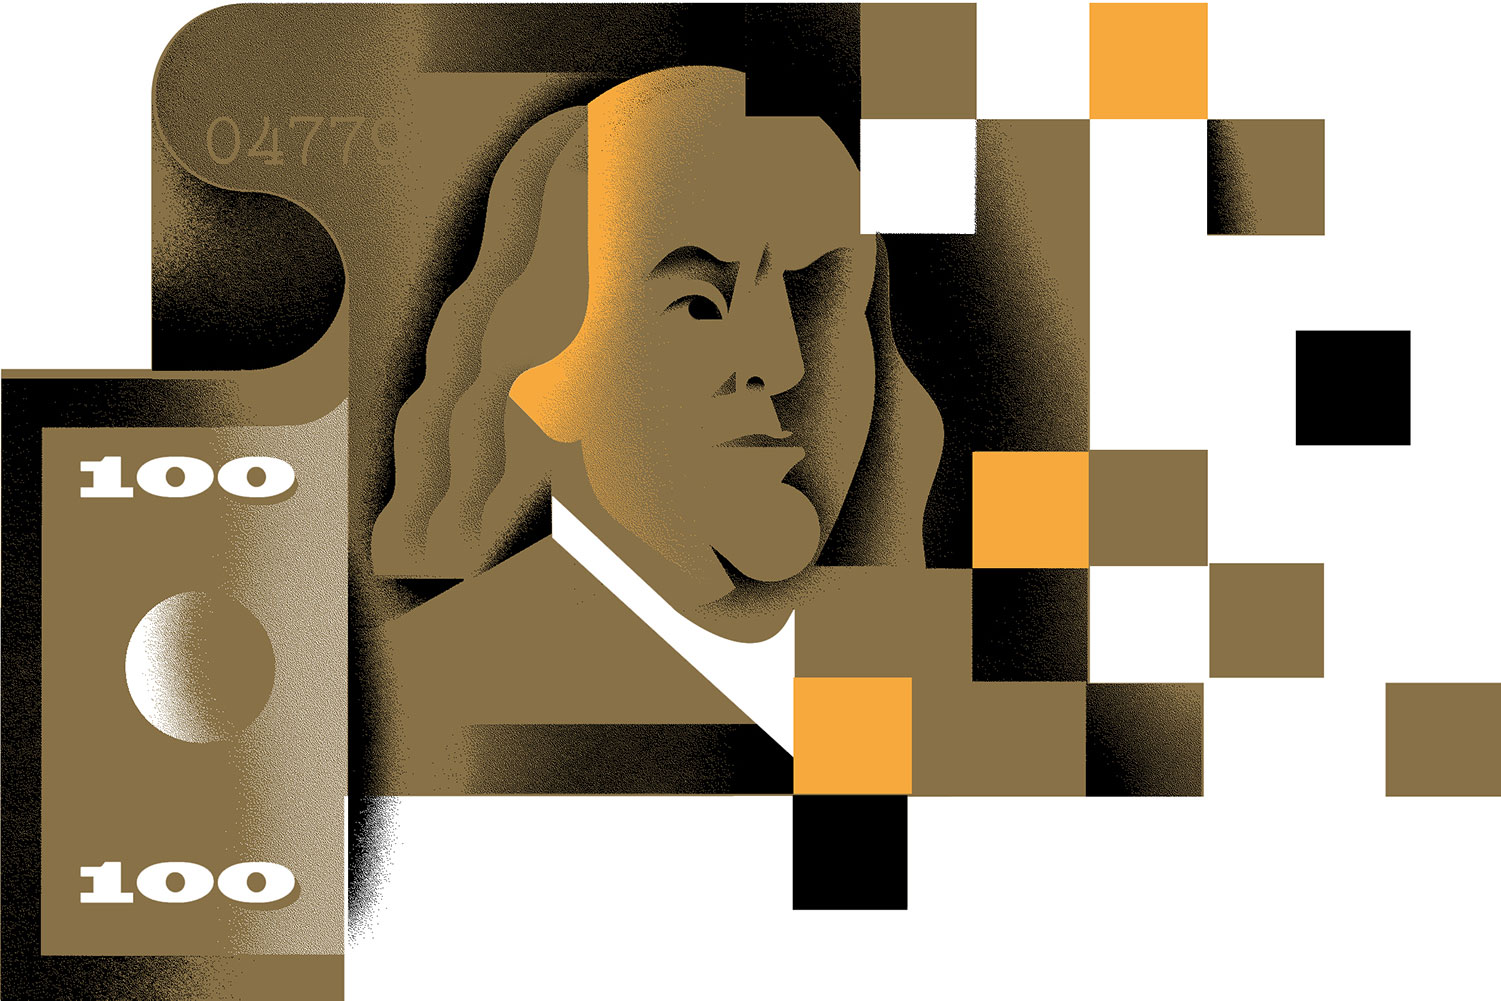 Benjamin Franklin on a stylised illustration of a dollar bill morphing into a credit card then pixelized data